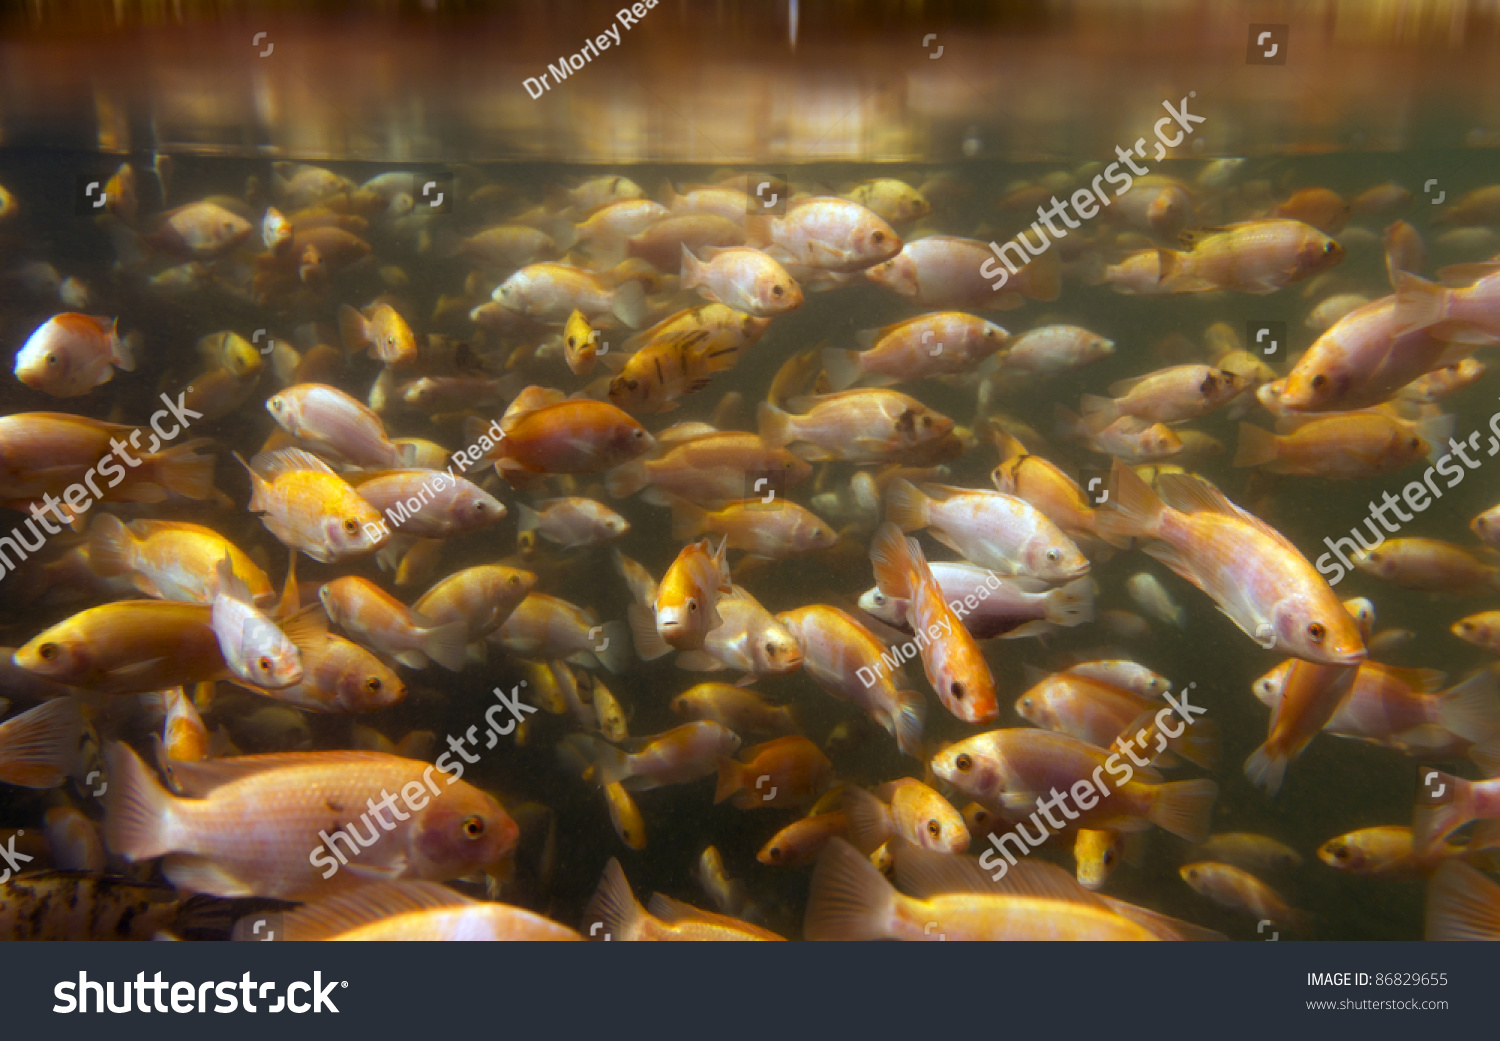 Tilapia underwater at a fish farm stock photo 86829655 for Tilapia swimming